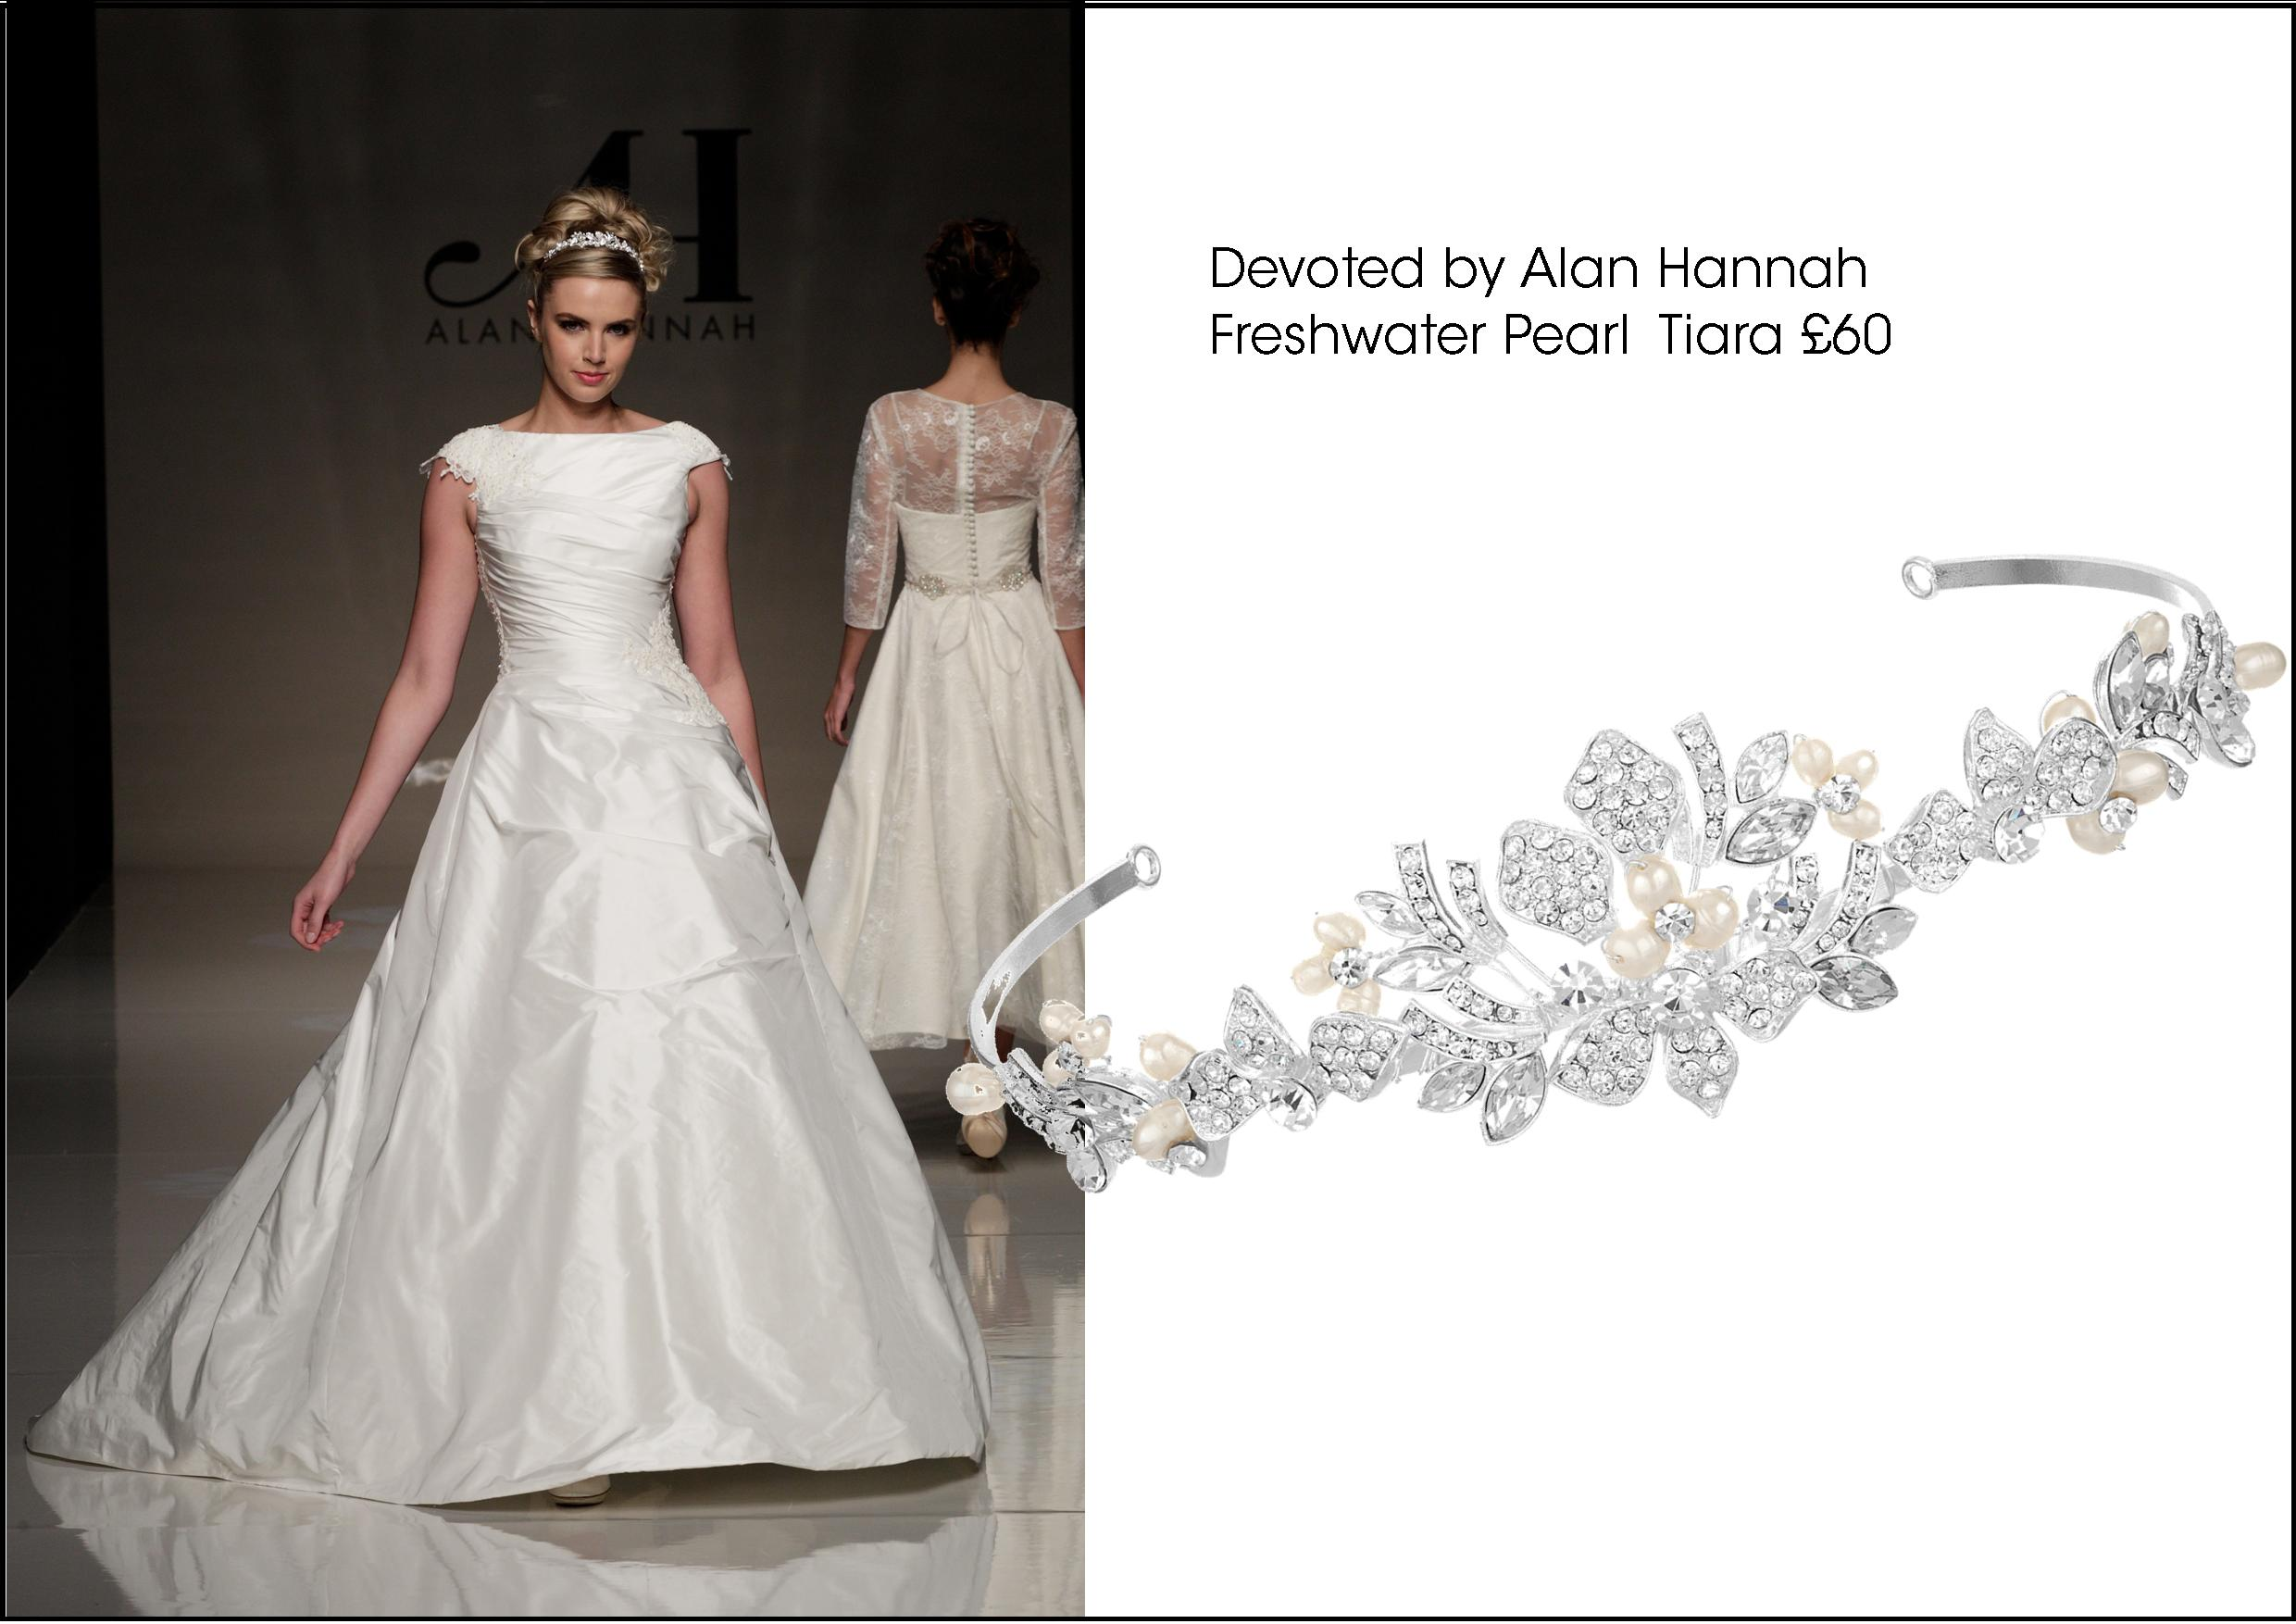 The Devoted By Alan Hannah Collection Over At Jon Richard Bridal